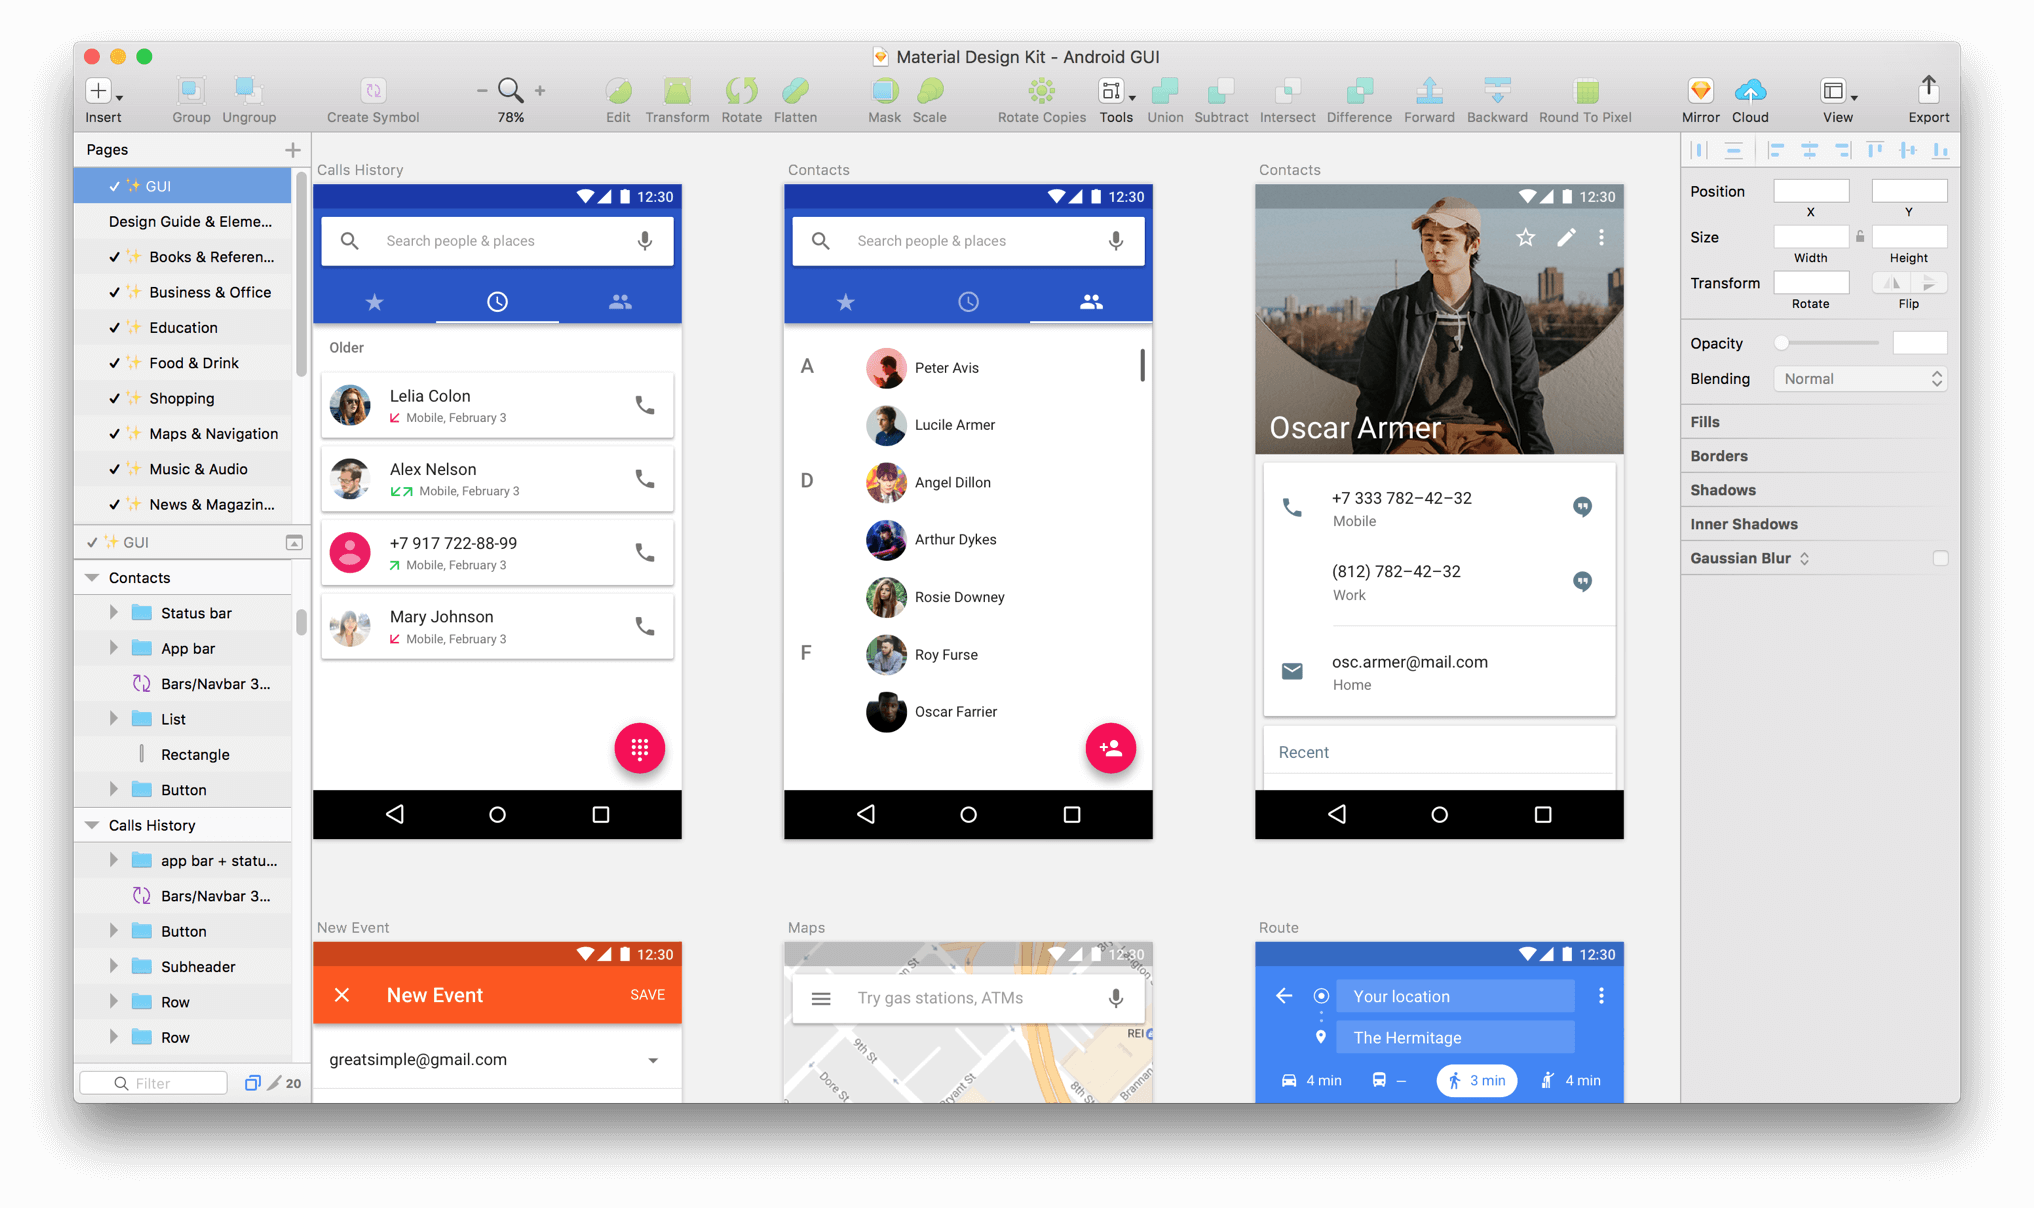 Android Gui Material Design Kit